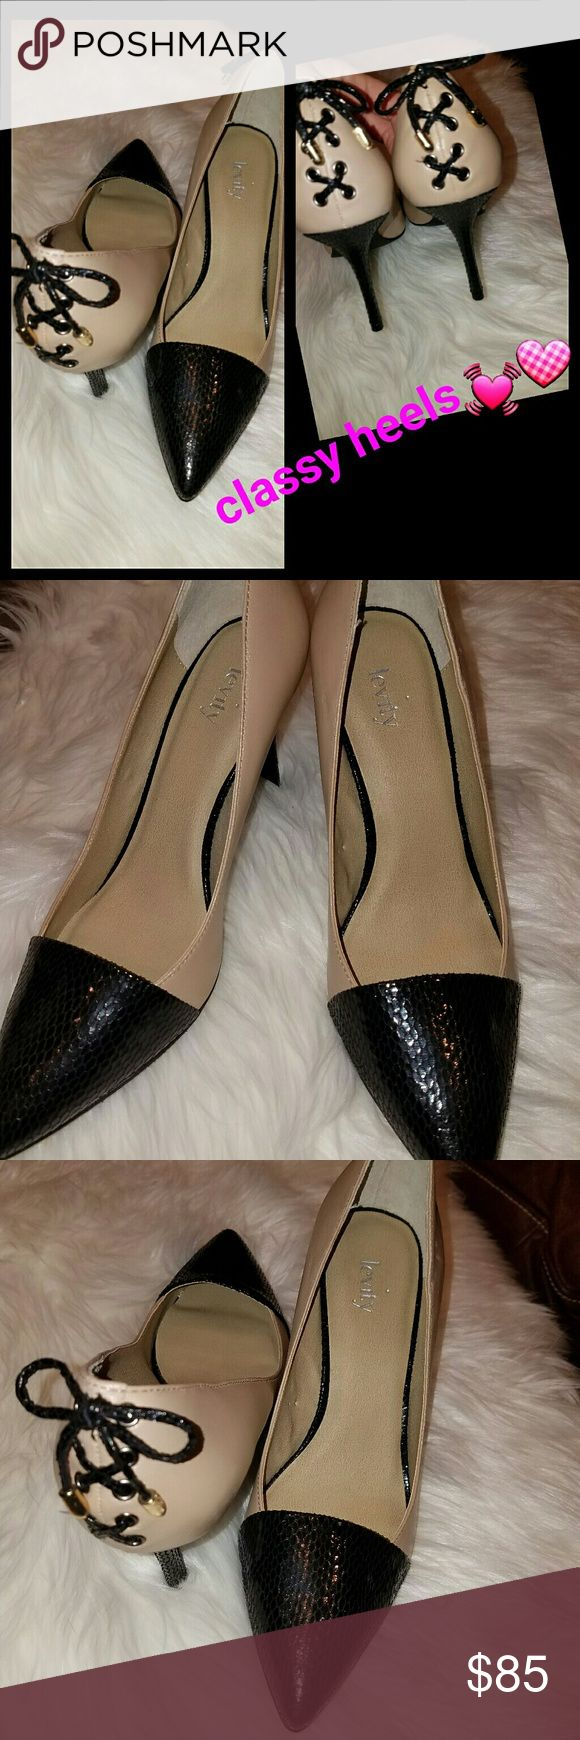 Classy Heels ! Brand new! Two-toned! Brand: Levity. Two- toned heel with details! Black and cream! Goes with anything!! Tie up back. Size 8.5 Happy Poshing!!! Shoes Heels